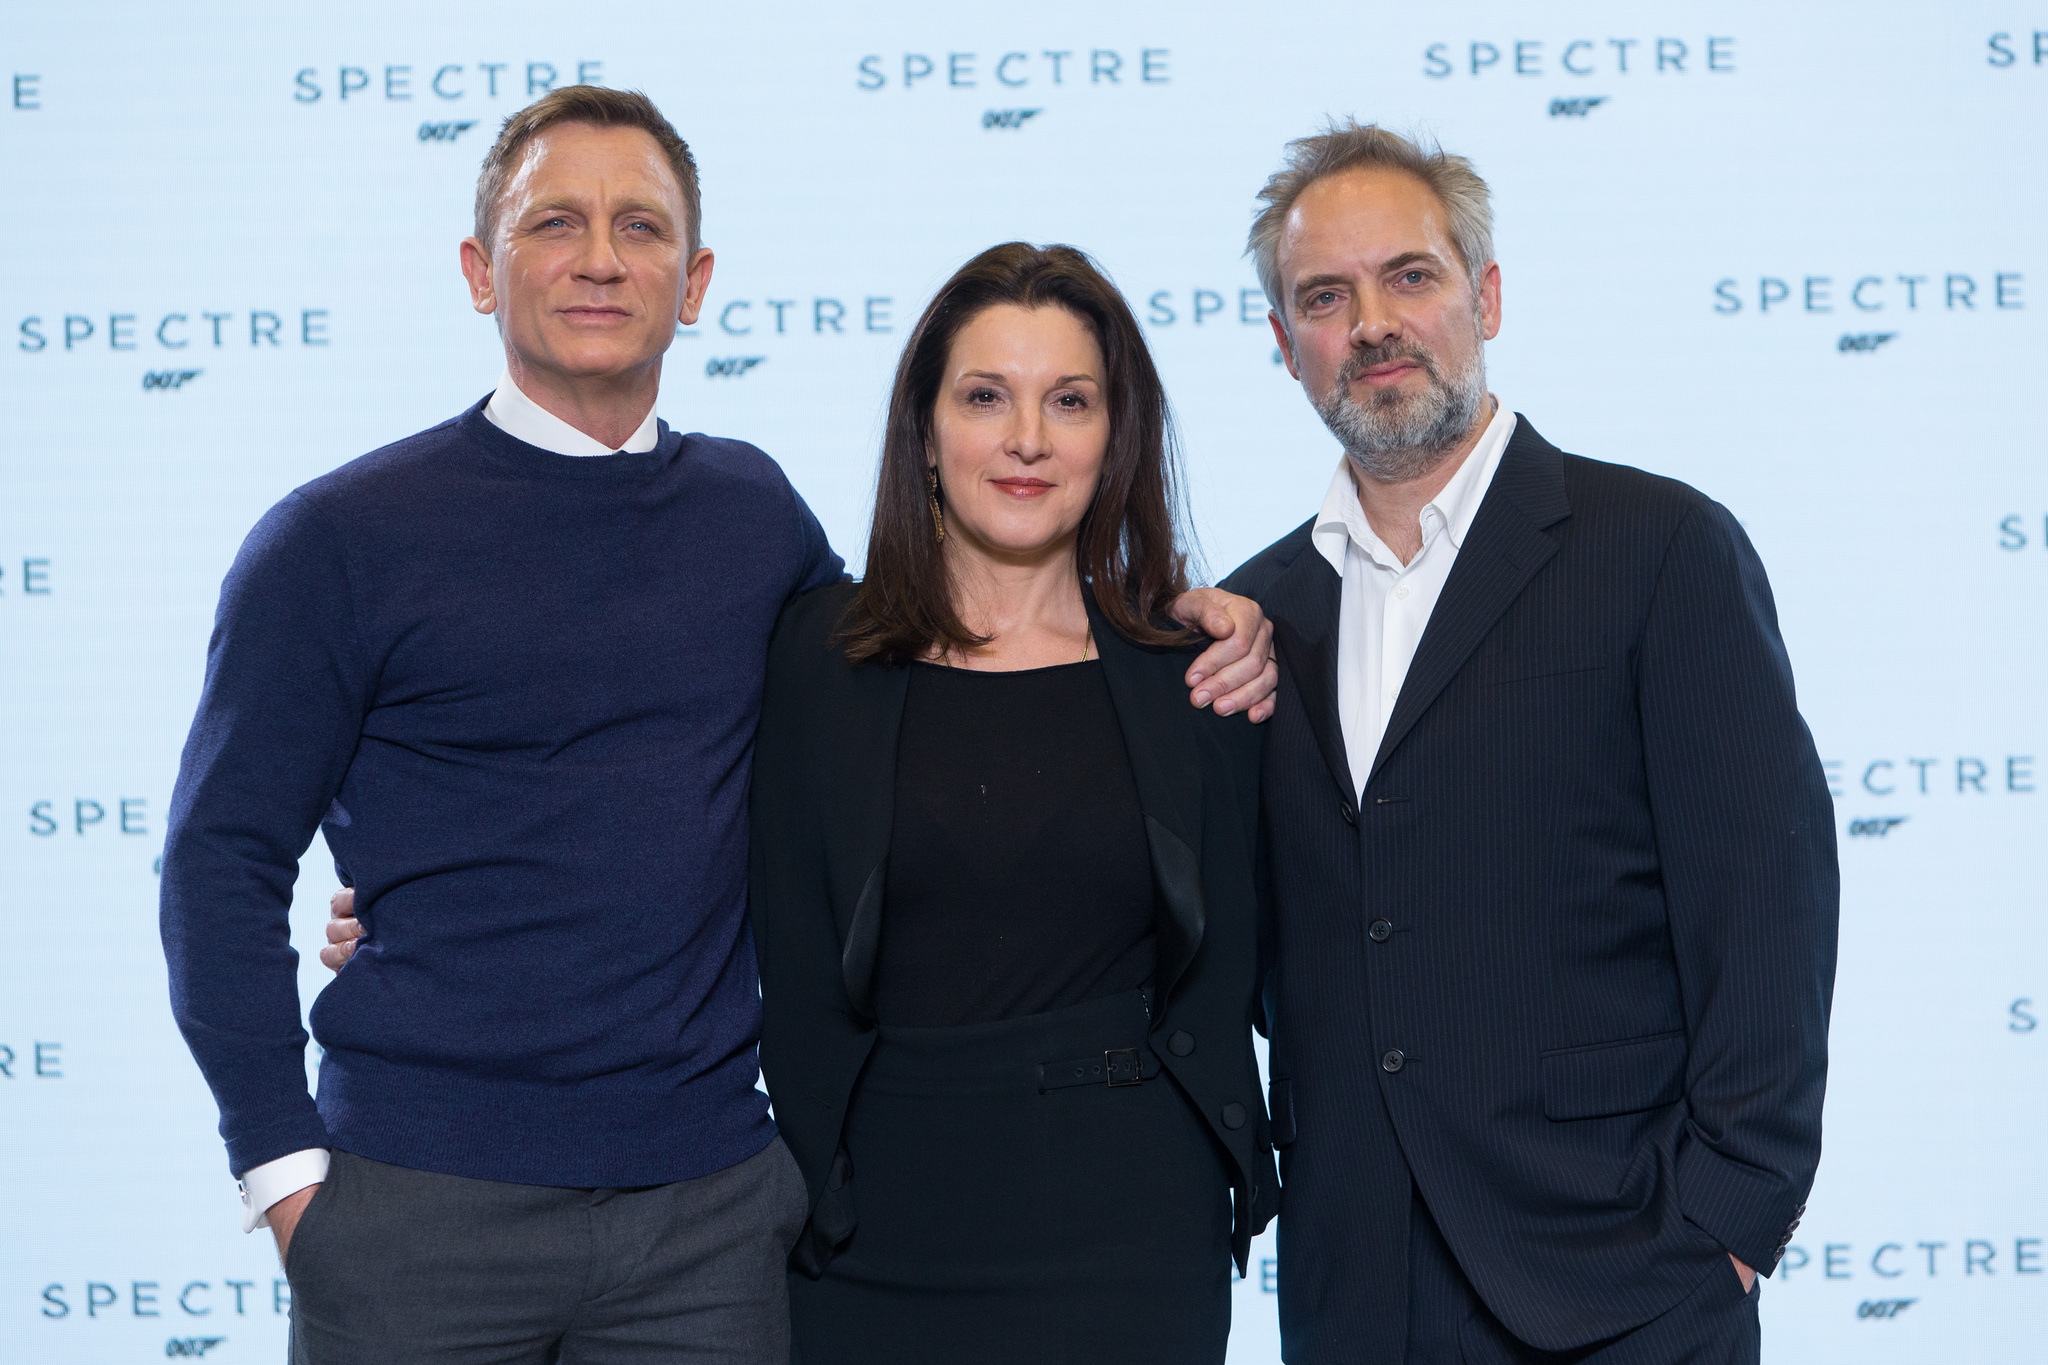 Sam Mendes, Barbara Broccoli, and Daniel Craig at an event for Spectre (2015)